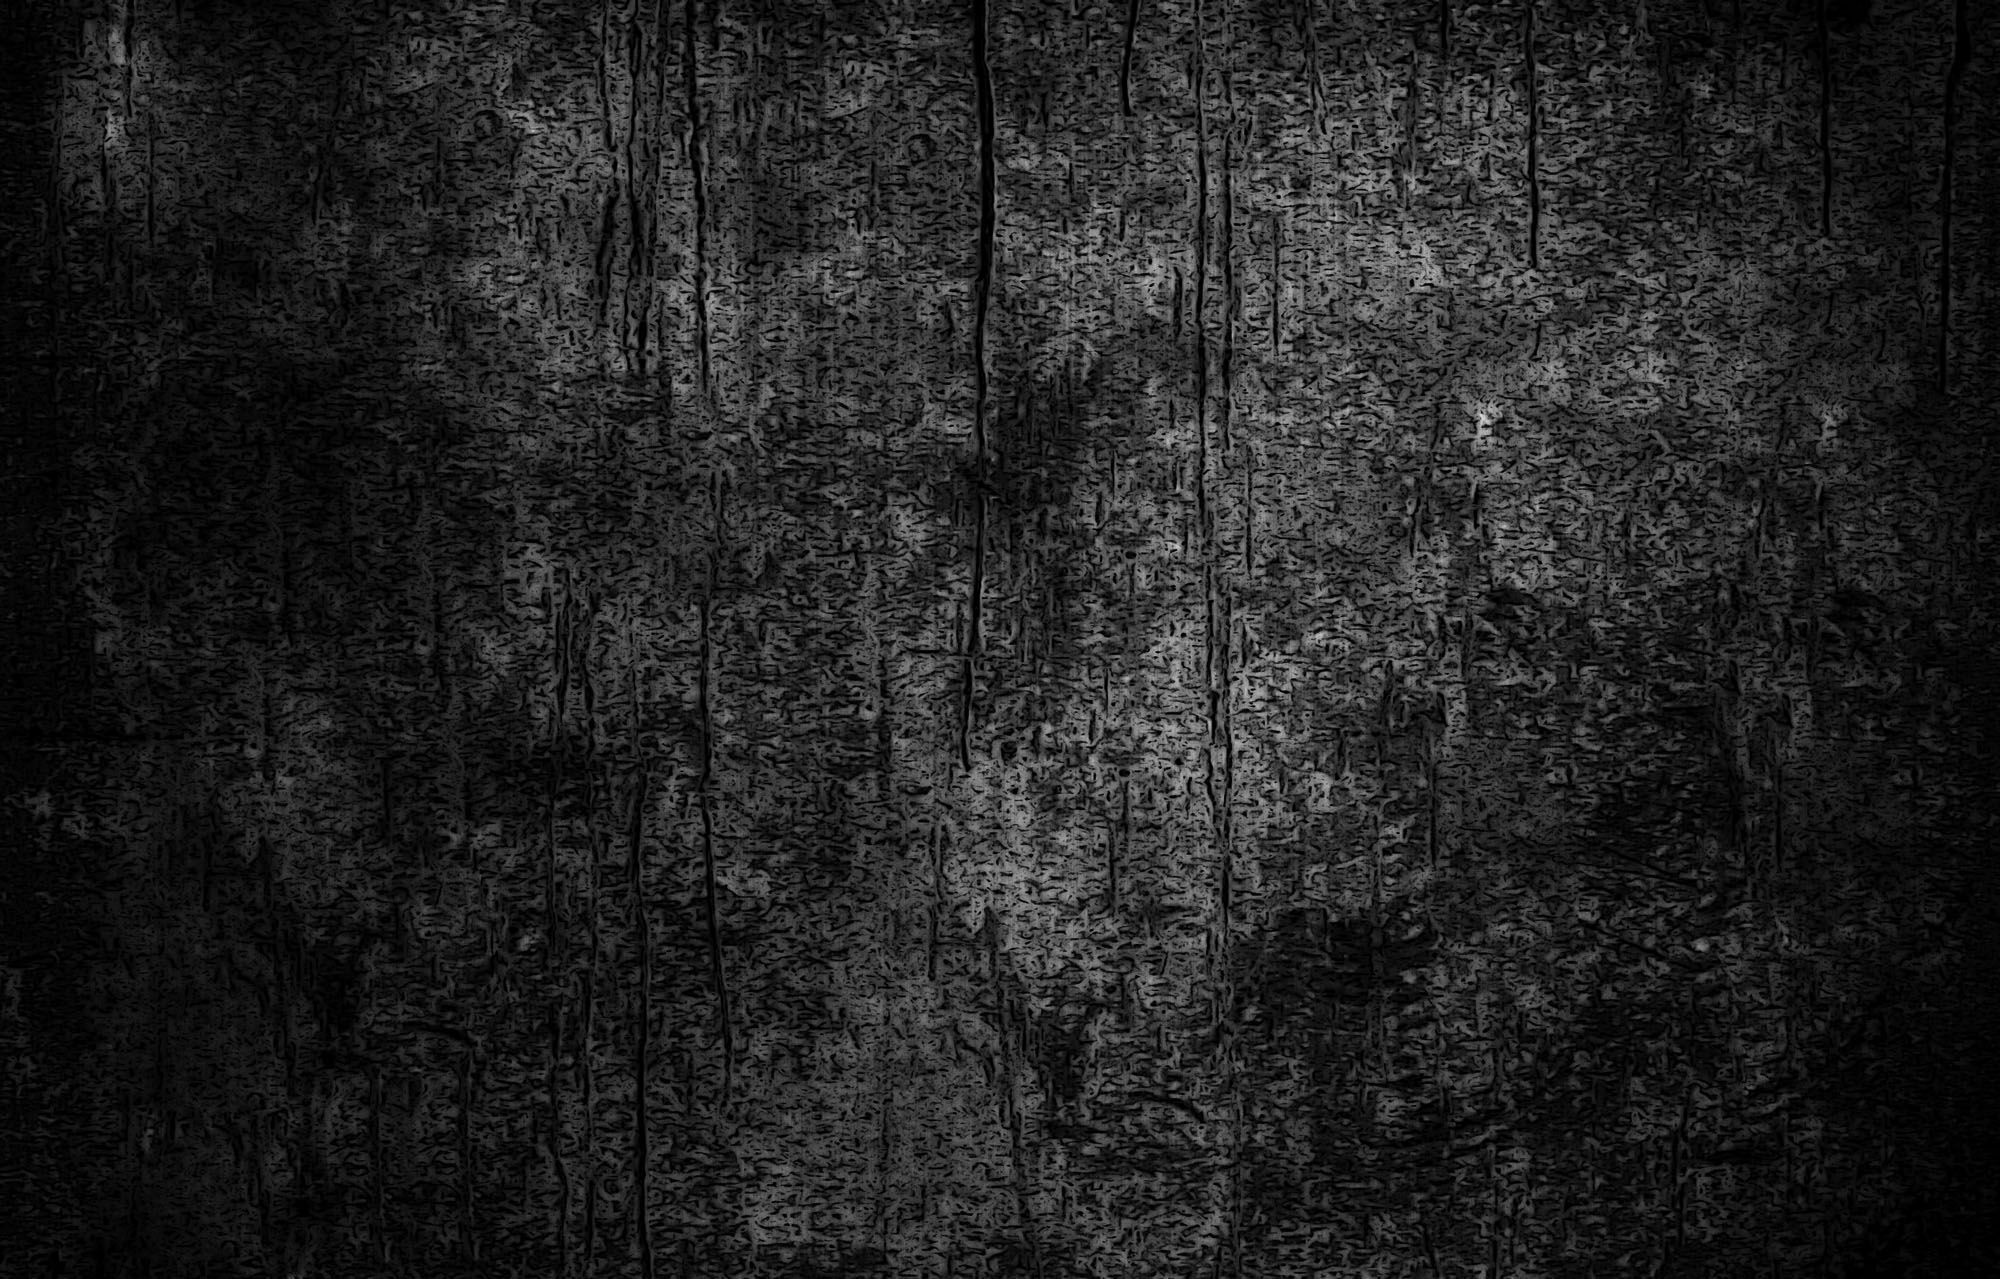 grunge backgrounds - Google Search | grunge portraits | Pinterest ...